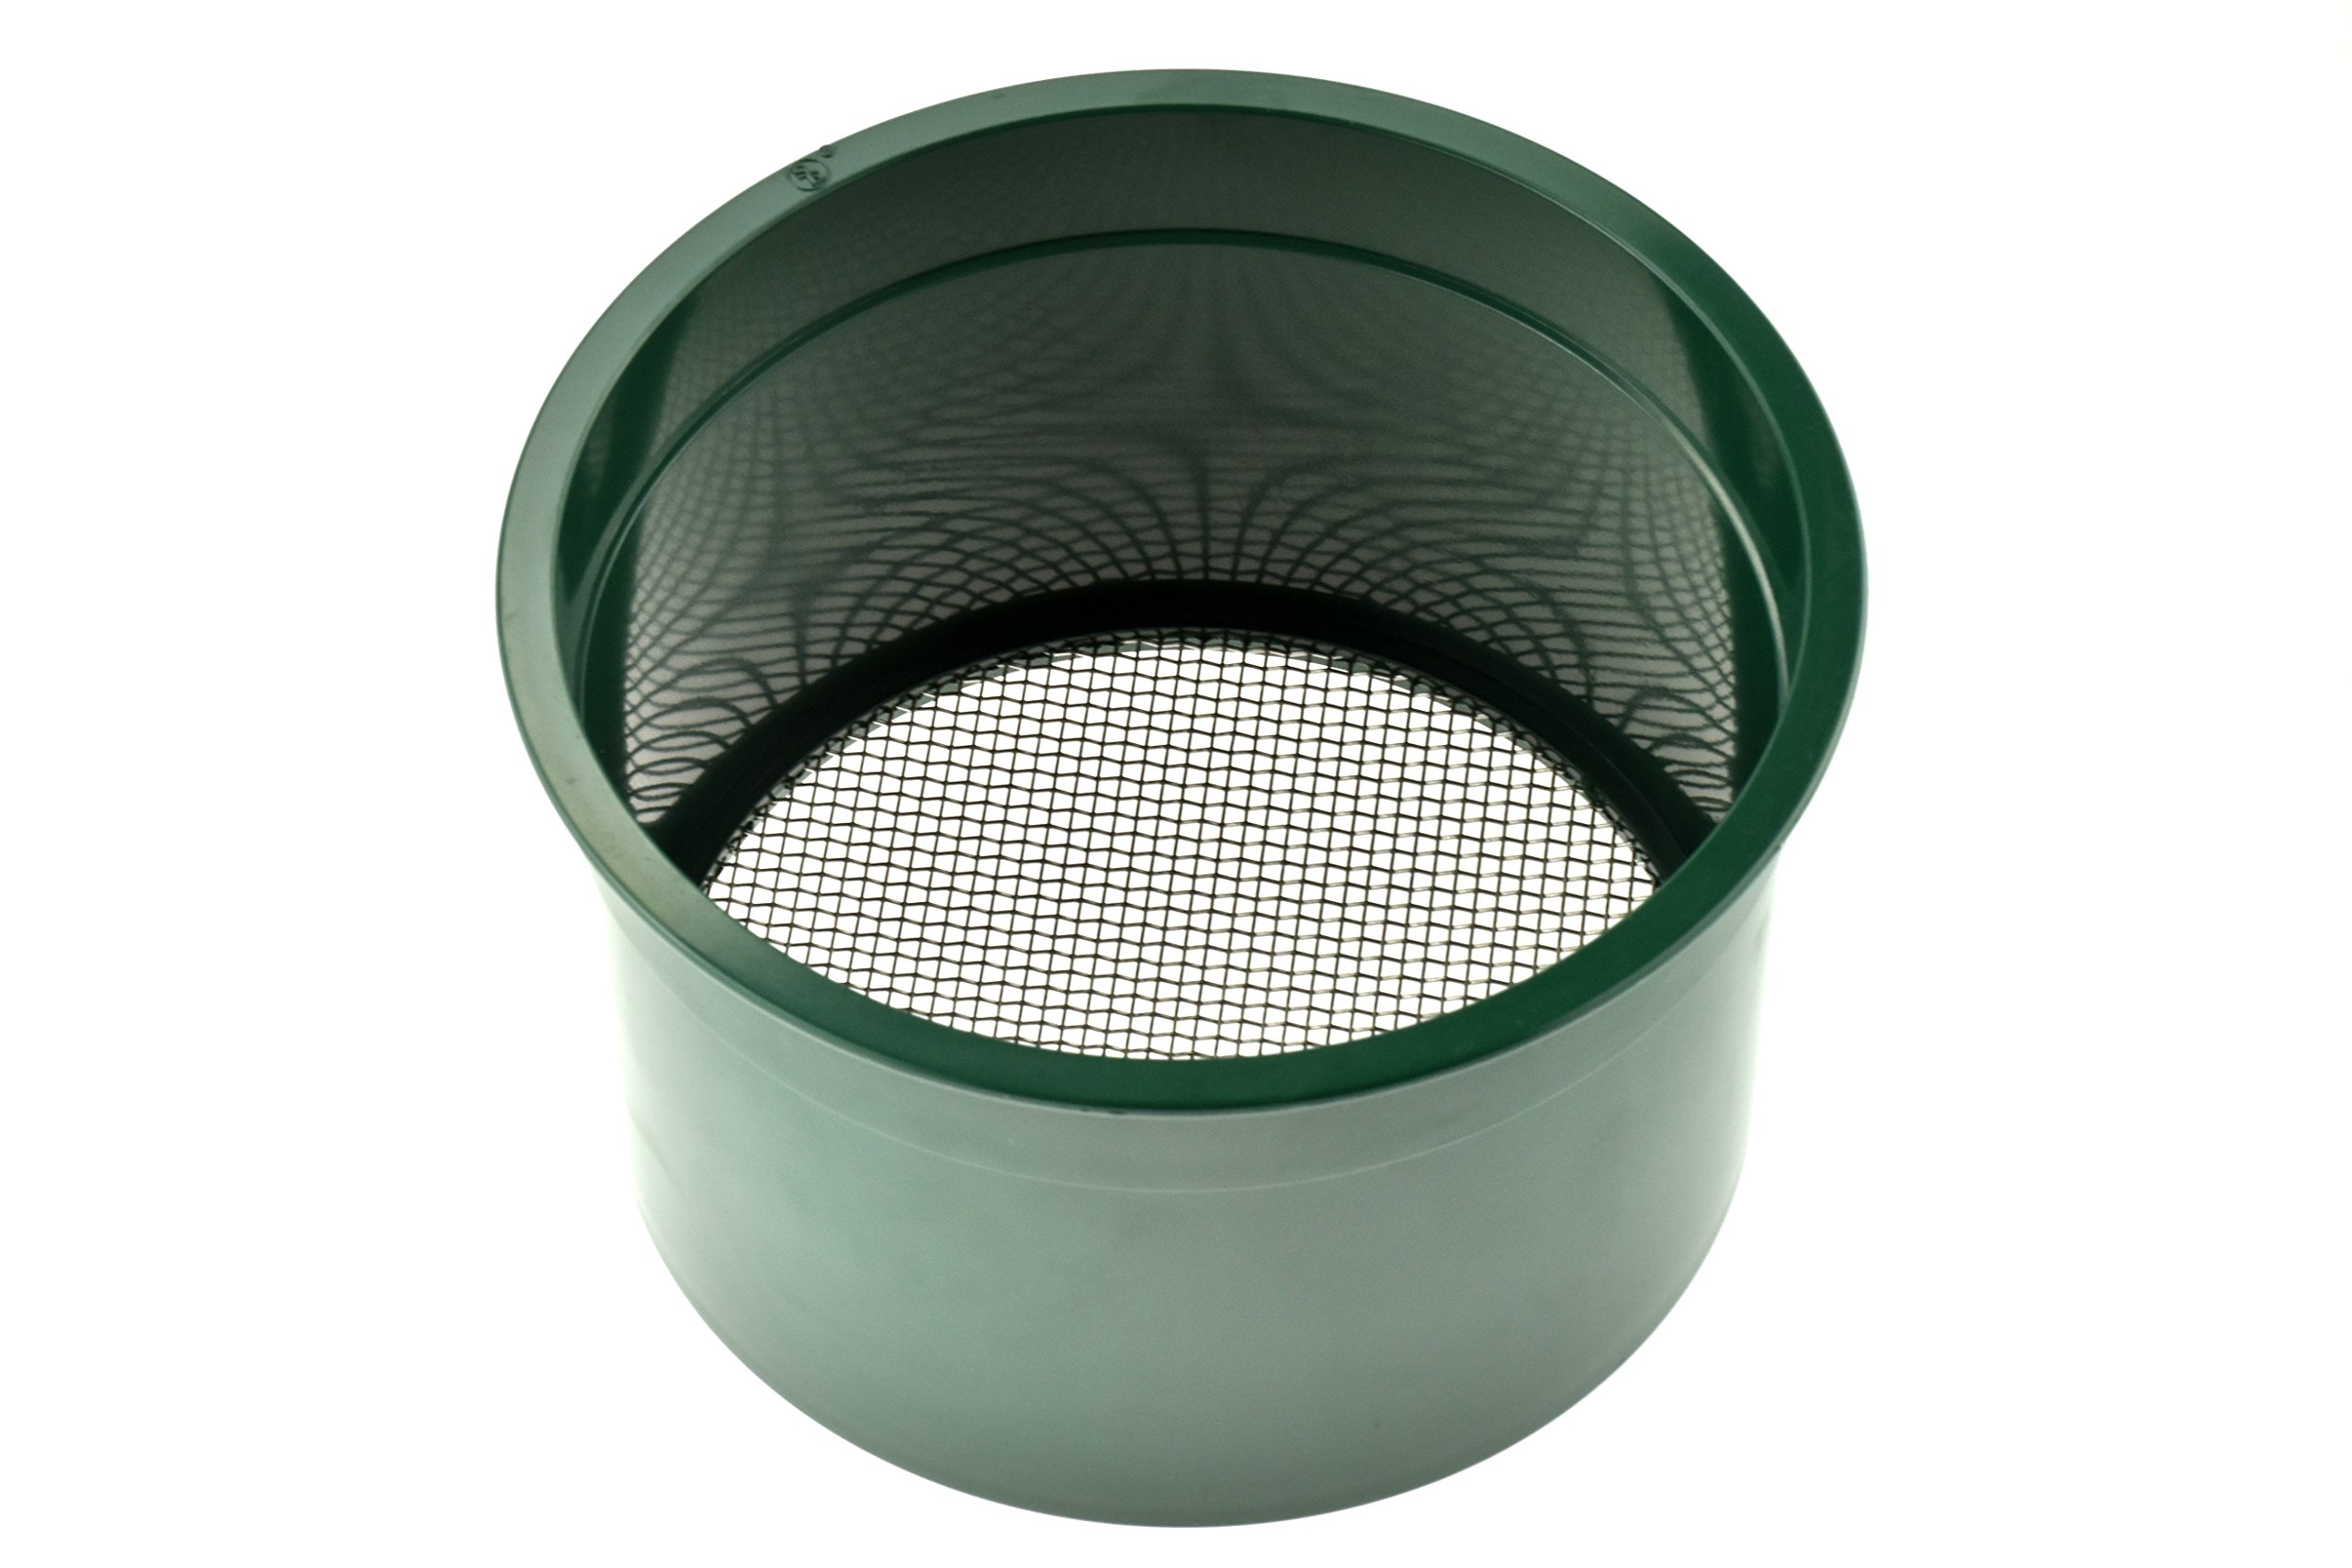 SE GP4-10 5.5'' Mini Stackable Sifting Pan, 10 Holes/Square Inch by SE (Image #1)